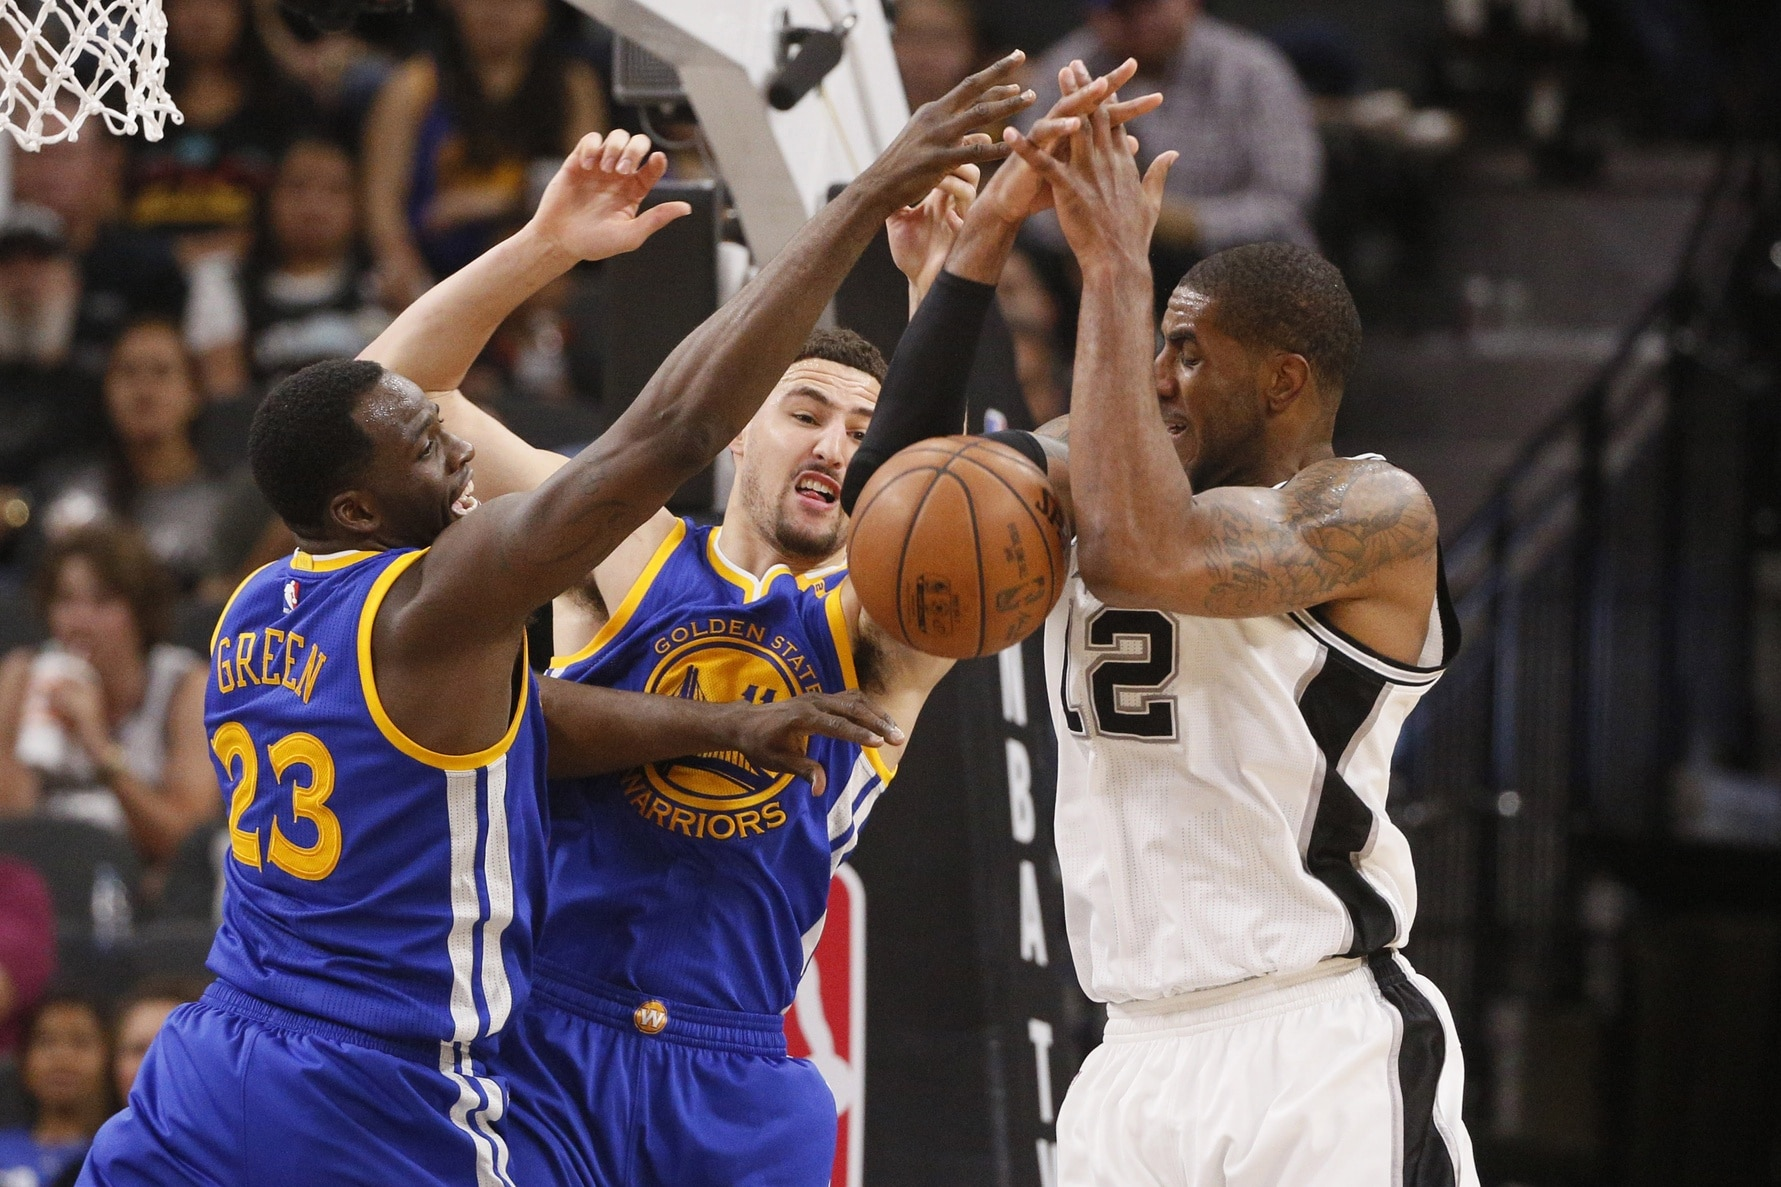 Mar 29, 2017; San Antonio, TX, USA; San Antonio Spurs power forward LaMarcus Aldridge (12) battle for a rebound with Golden State Warriors power forward Draymond Green (23) and Klay Thompson (11) during the second half at AT&T Center. Mandatory Credit: Soobum Im-USA TODAY Sports